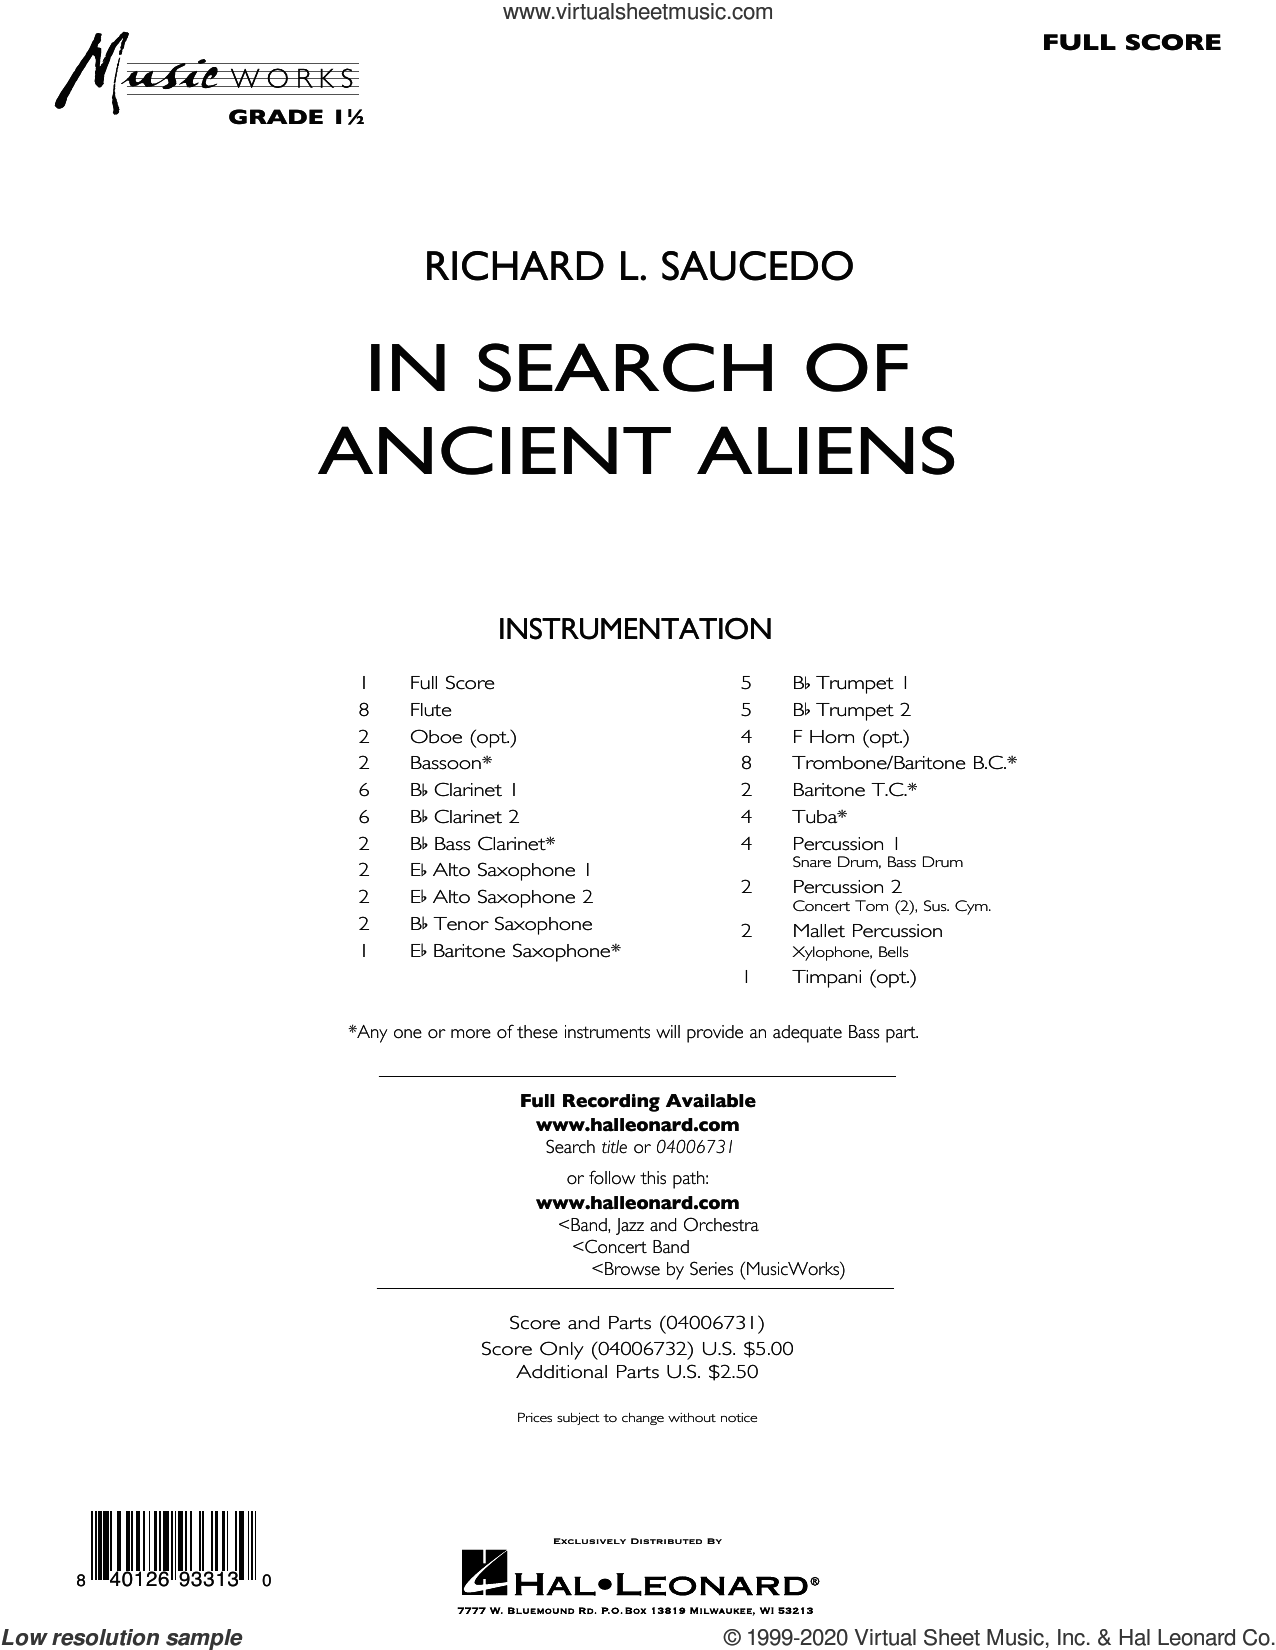 In Search of Ancient Aliens (COMPLETE) sheet music for concert band by Richard L. Saucedo, intermediate skill level